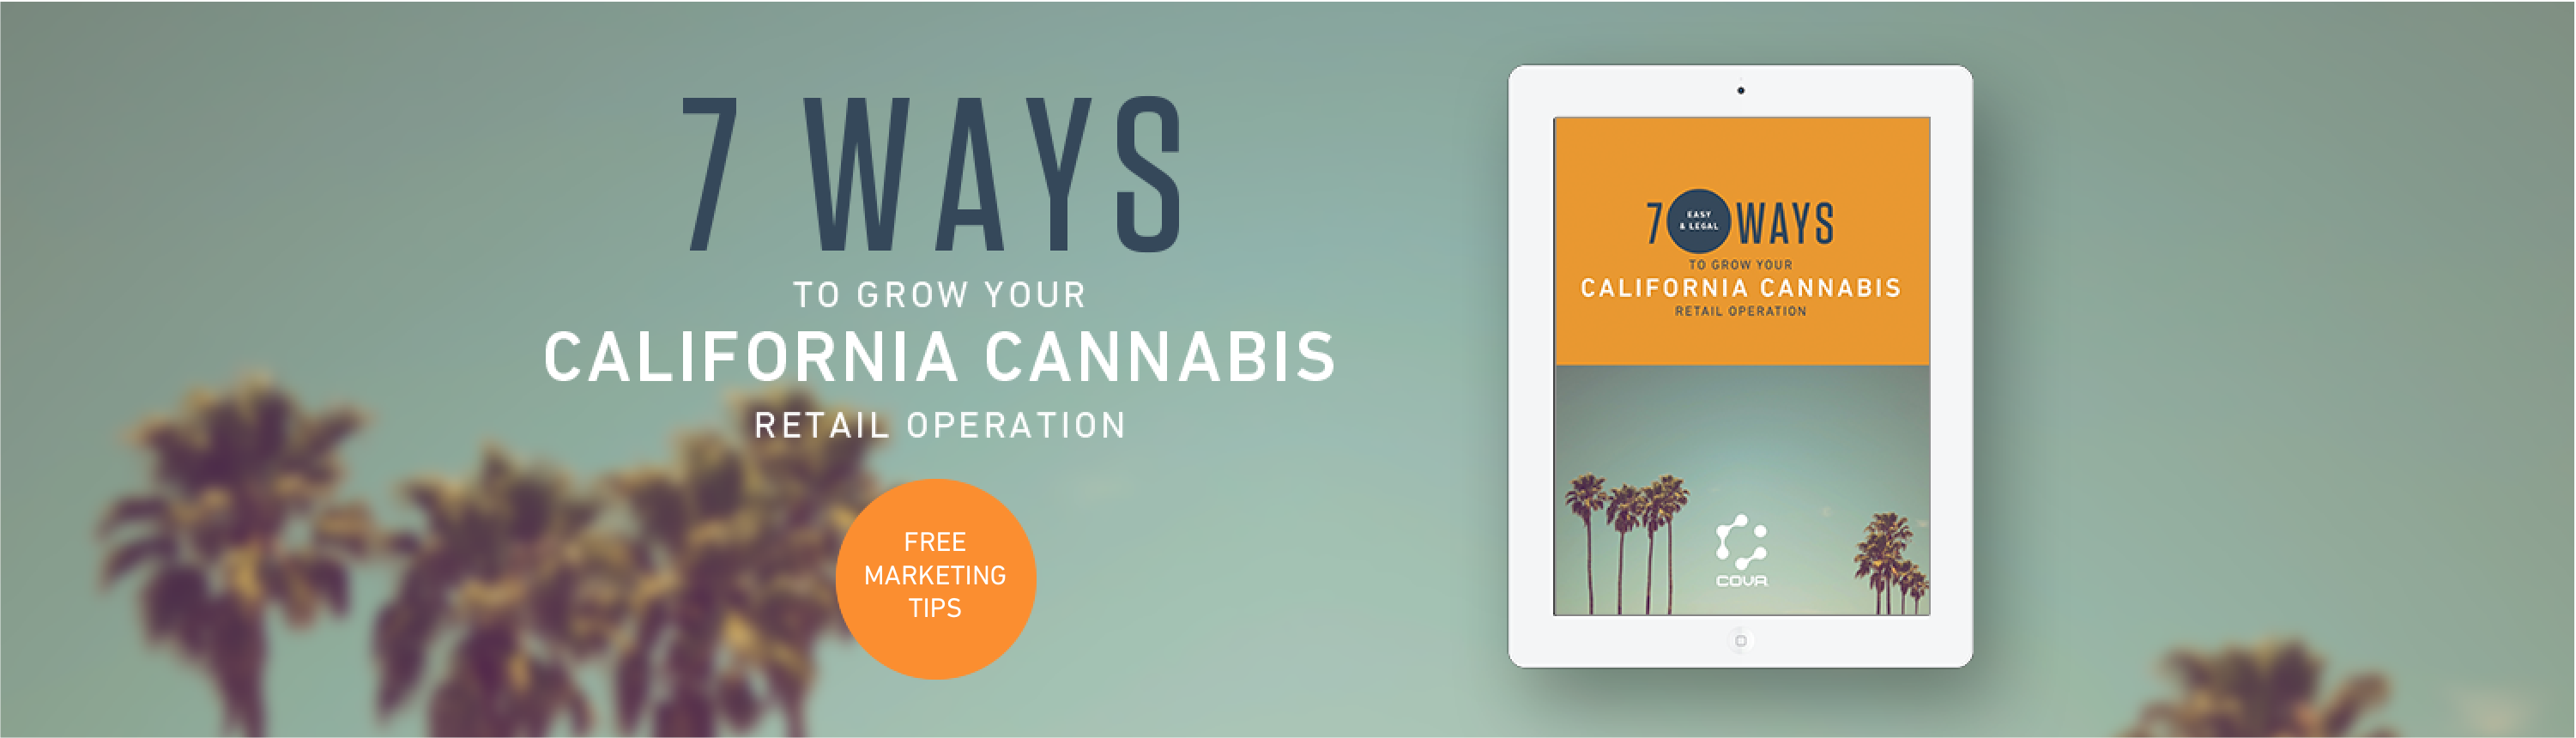 cova_banners_Marketing-tips-california.png